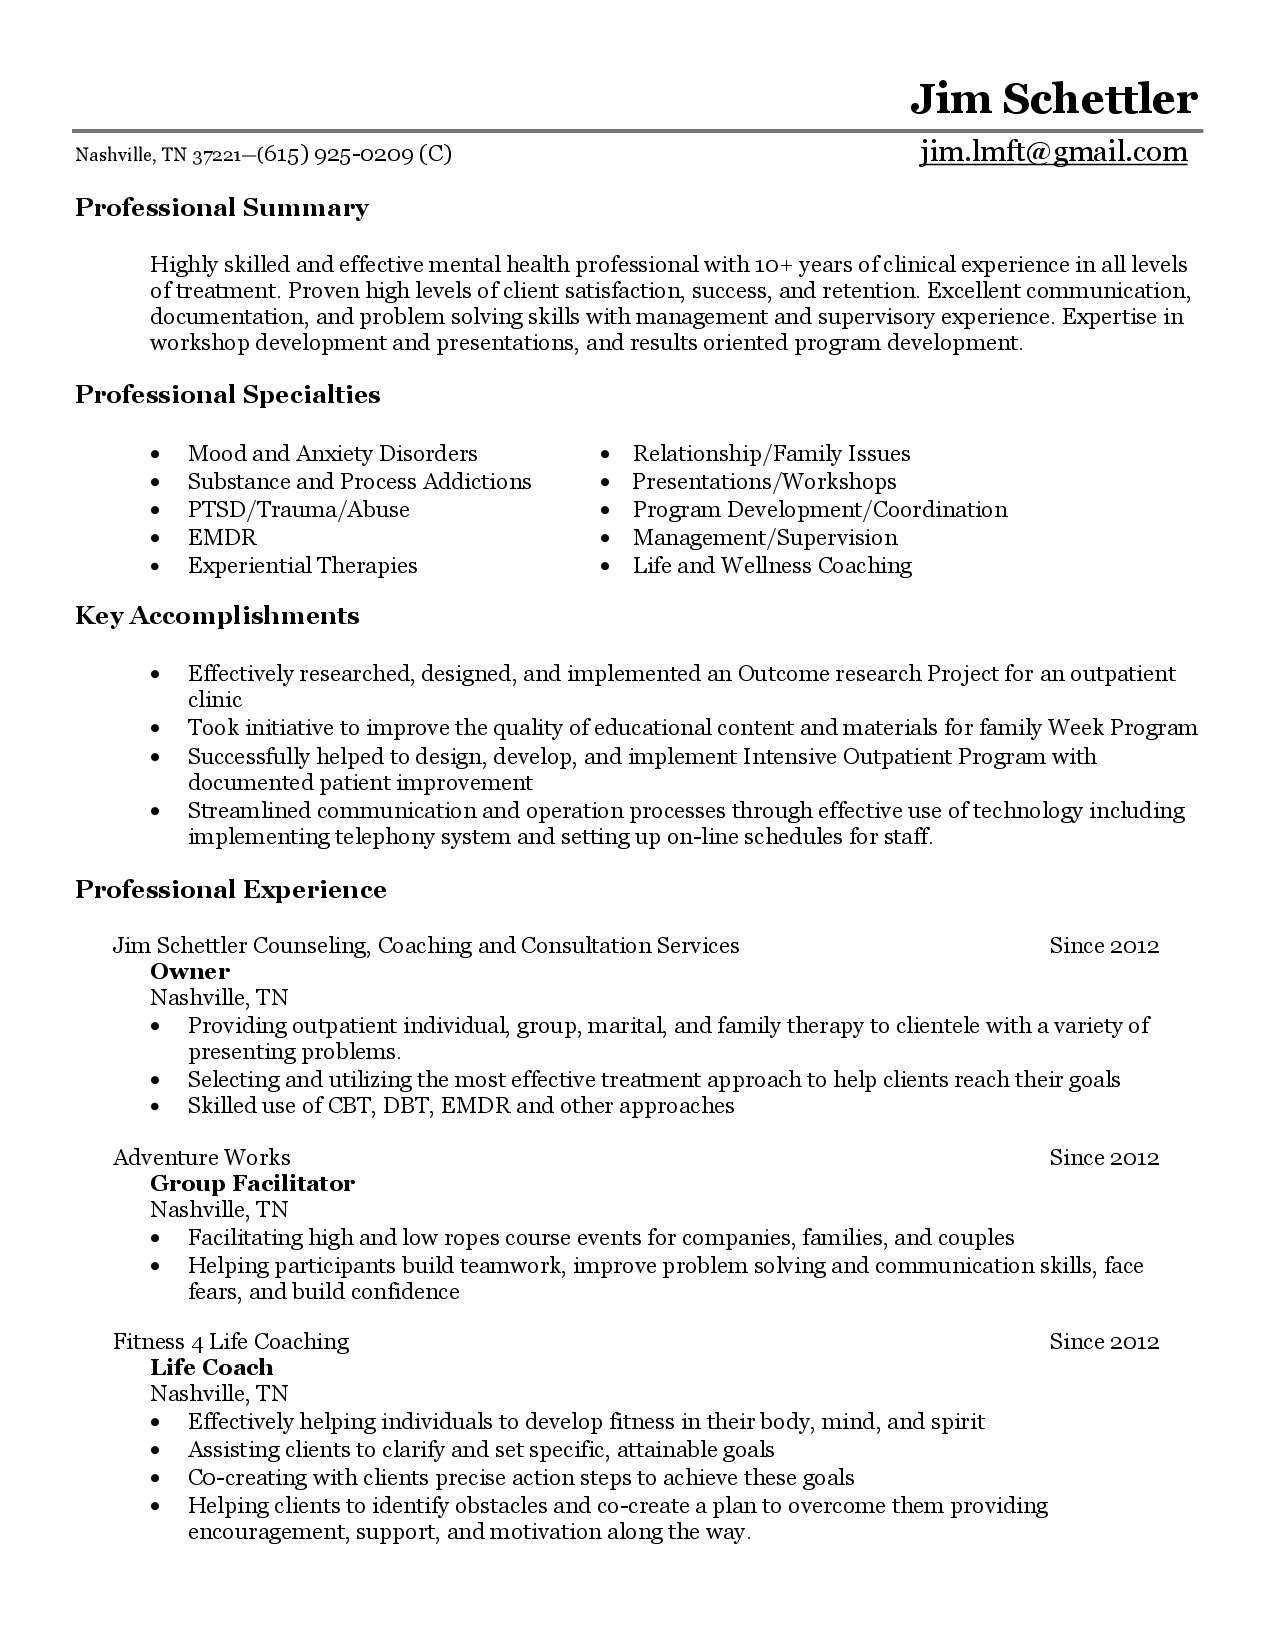 Online Resume Editing Services